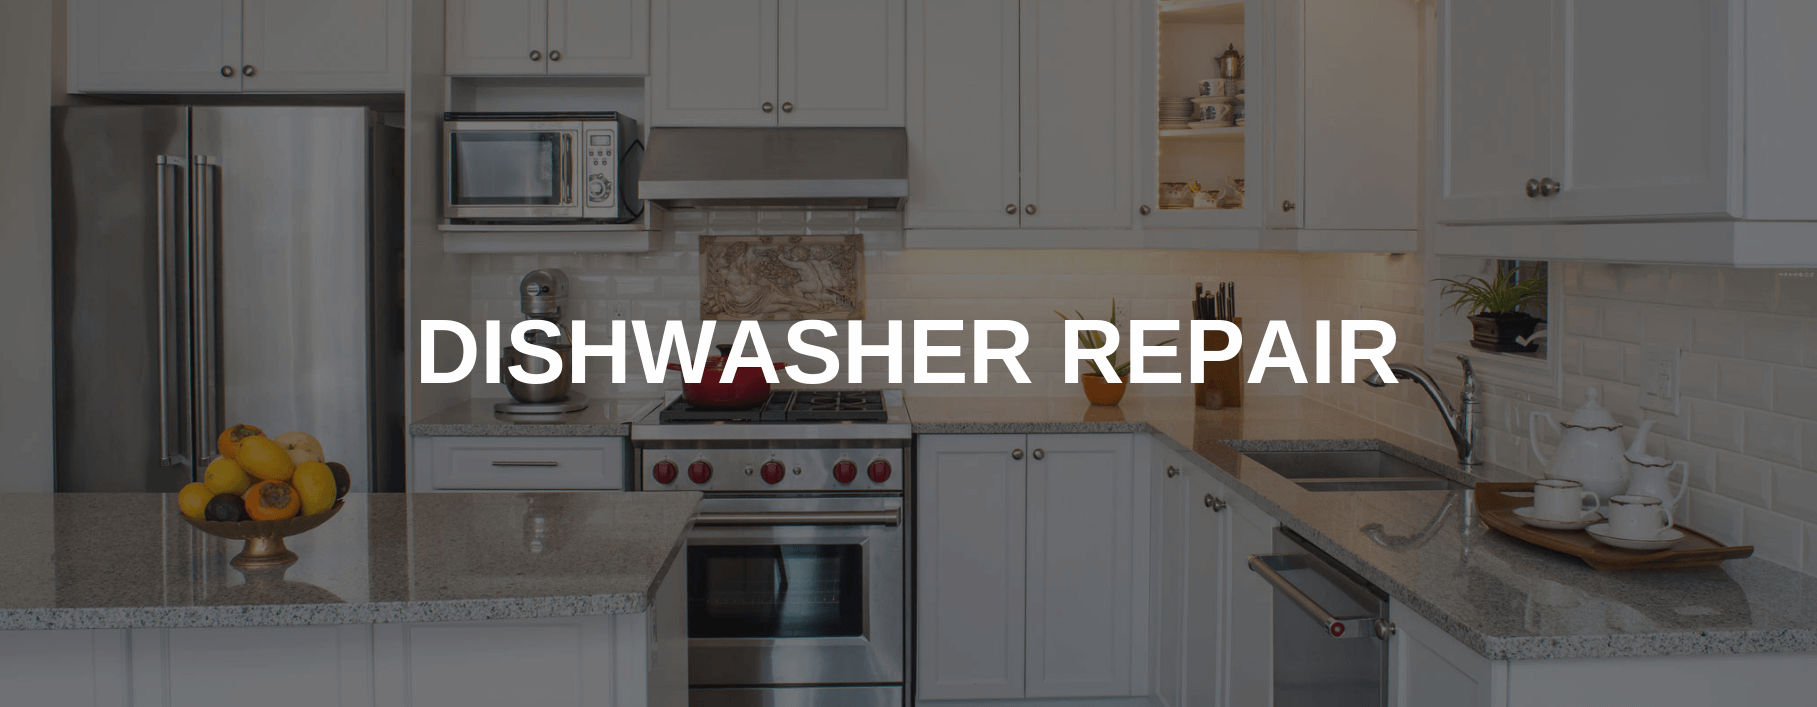 dishwasher repair centreville